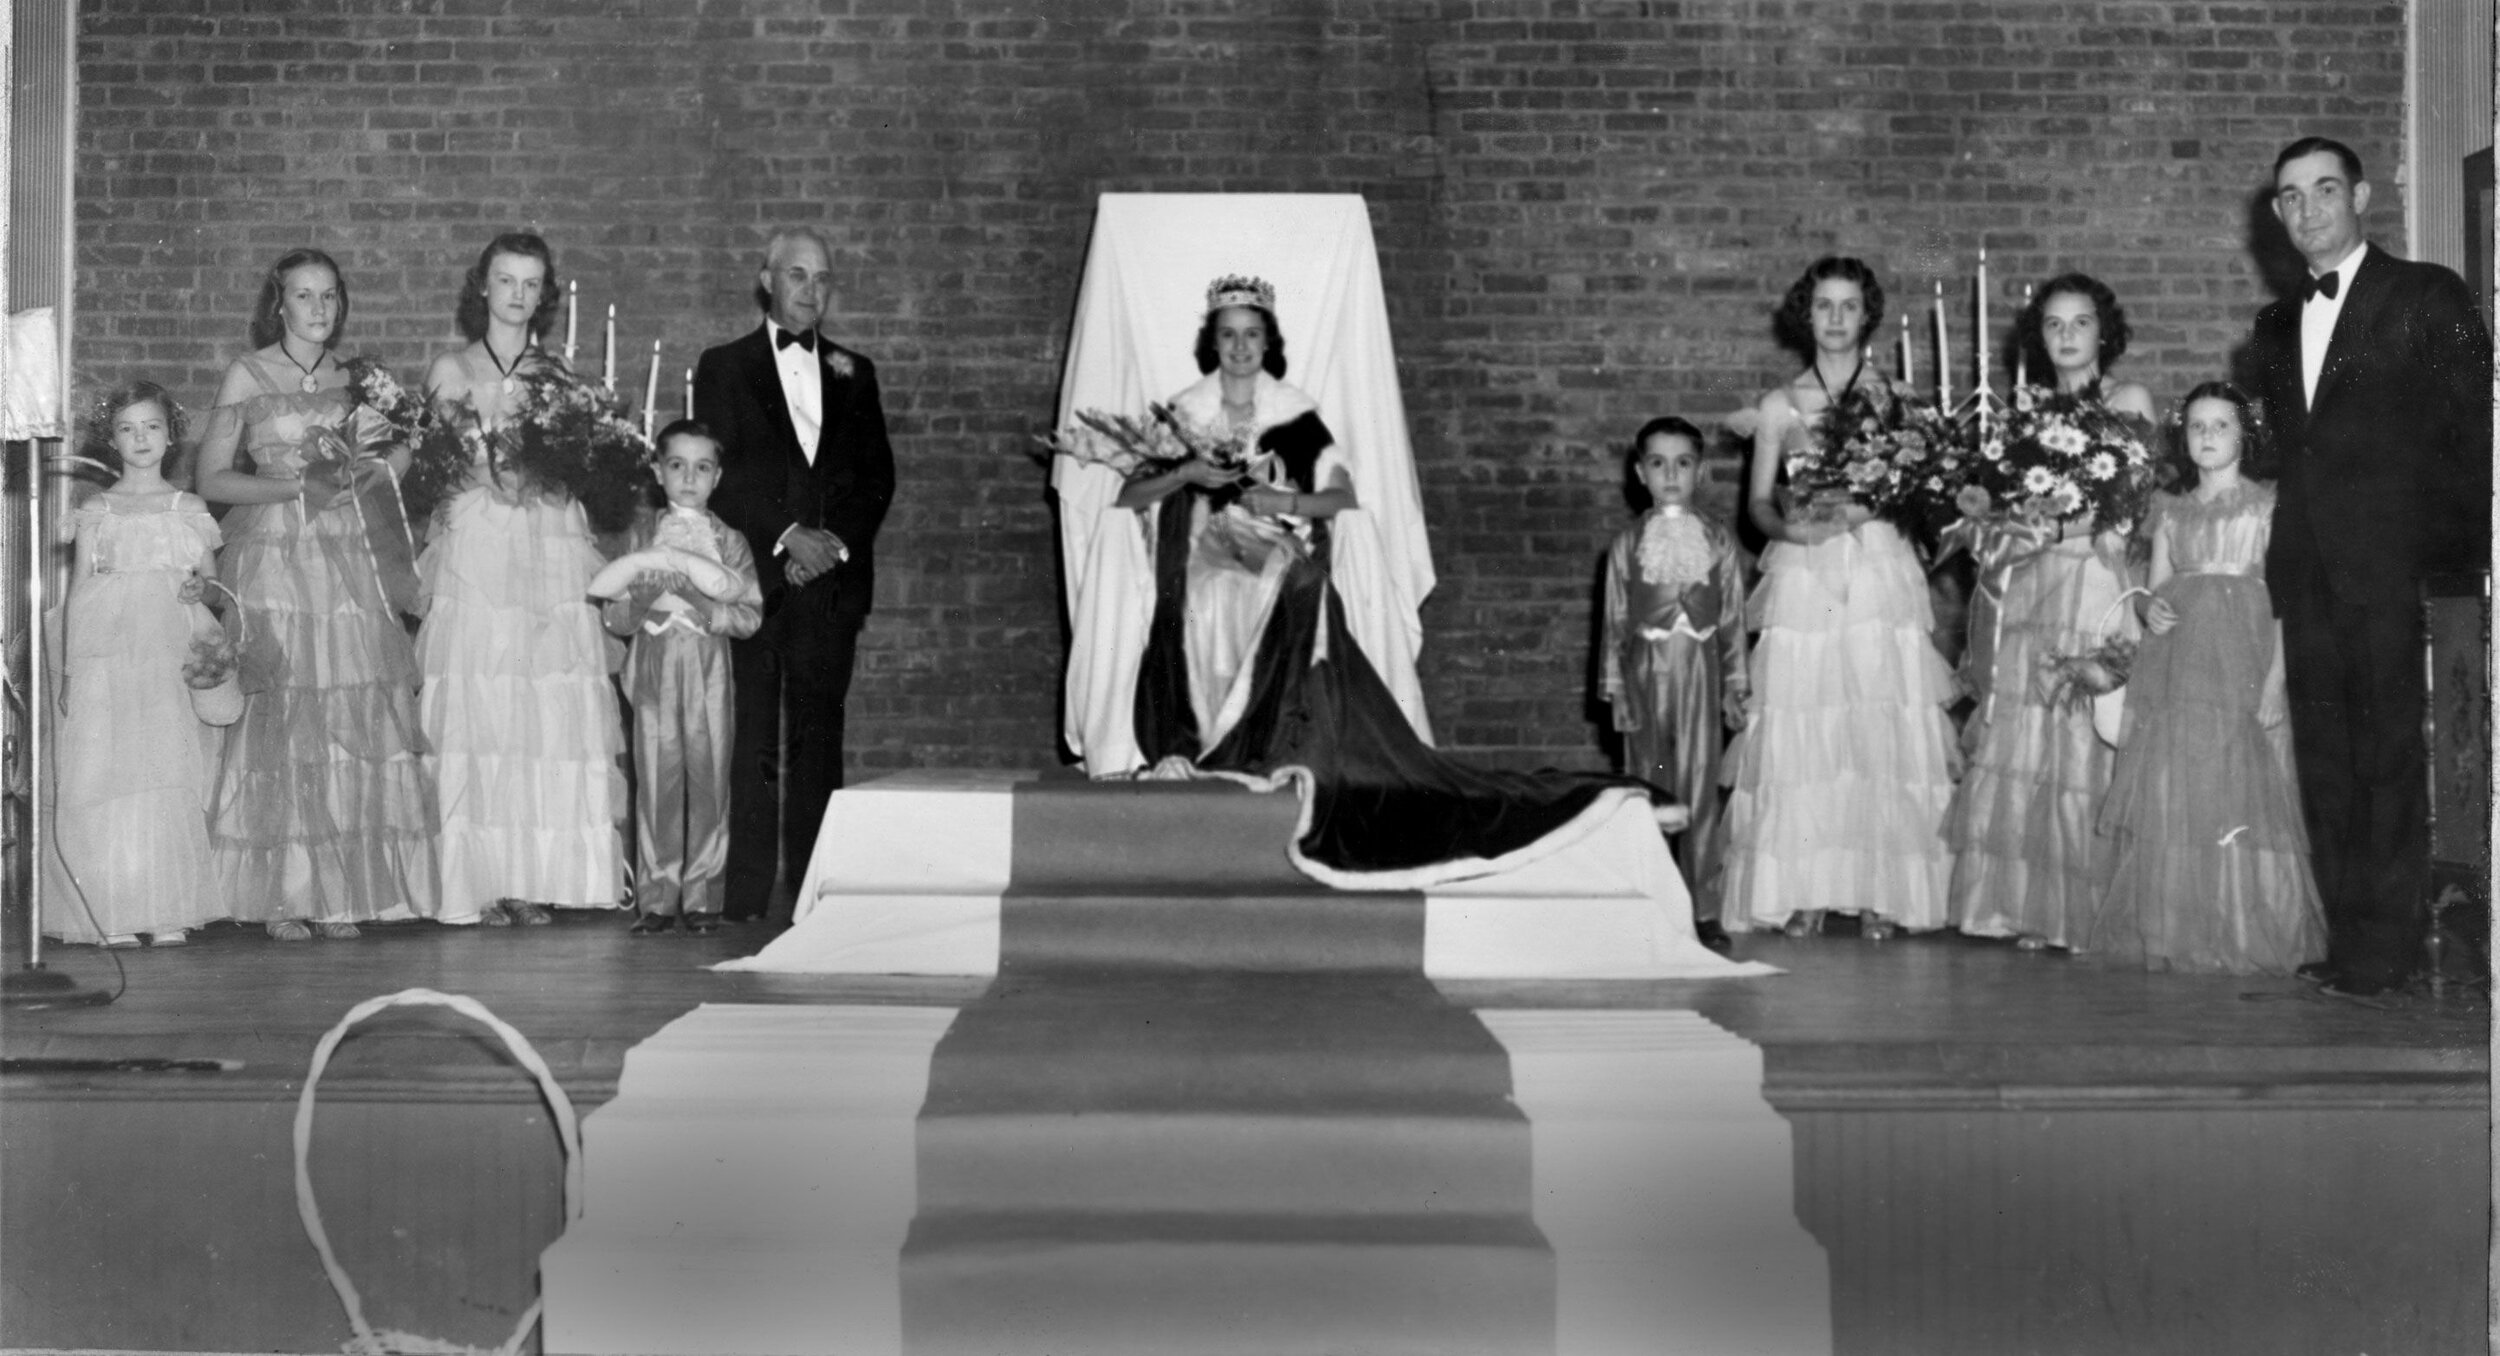 First Mimosa Festival – June 23, 1938. Left to right: Sarah Lou Davis, flower girl; Nancy Harbison and Ann Huffman, attendants; John Wilson, crown bearer; Benedict Bristol, Mayor of Morganton who crowned the Queen; Margaret Chaffee, the first Mimosa Queen; David Wilson, page; Elizabeth Sharpe Erwin and Betty Gaither, attendants; Martha Fuller Chaffee, (sister of the Queen) flower girl; Frank C. Patton, master of ceremonies. Photo contributed by the Burke Co. Pub. Library